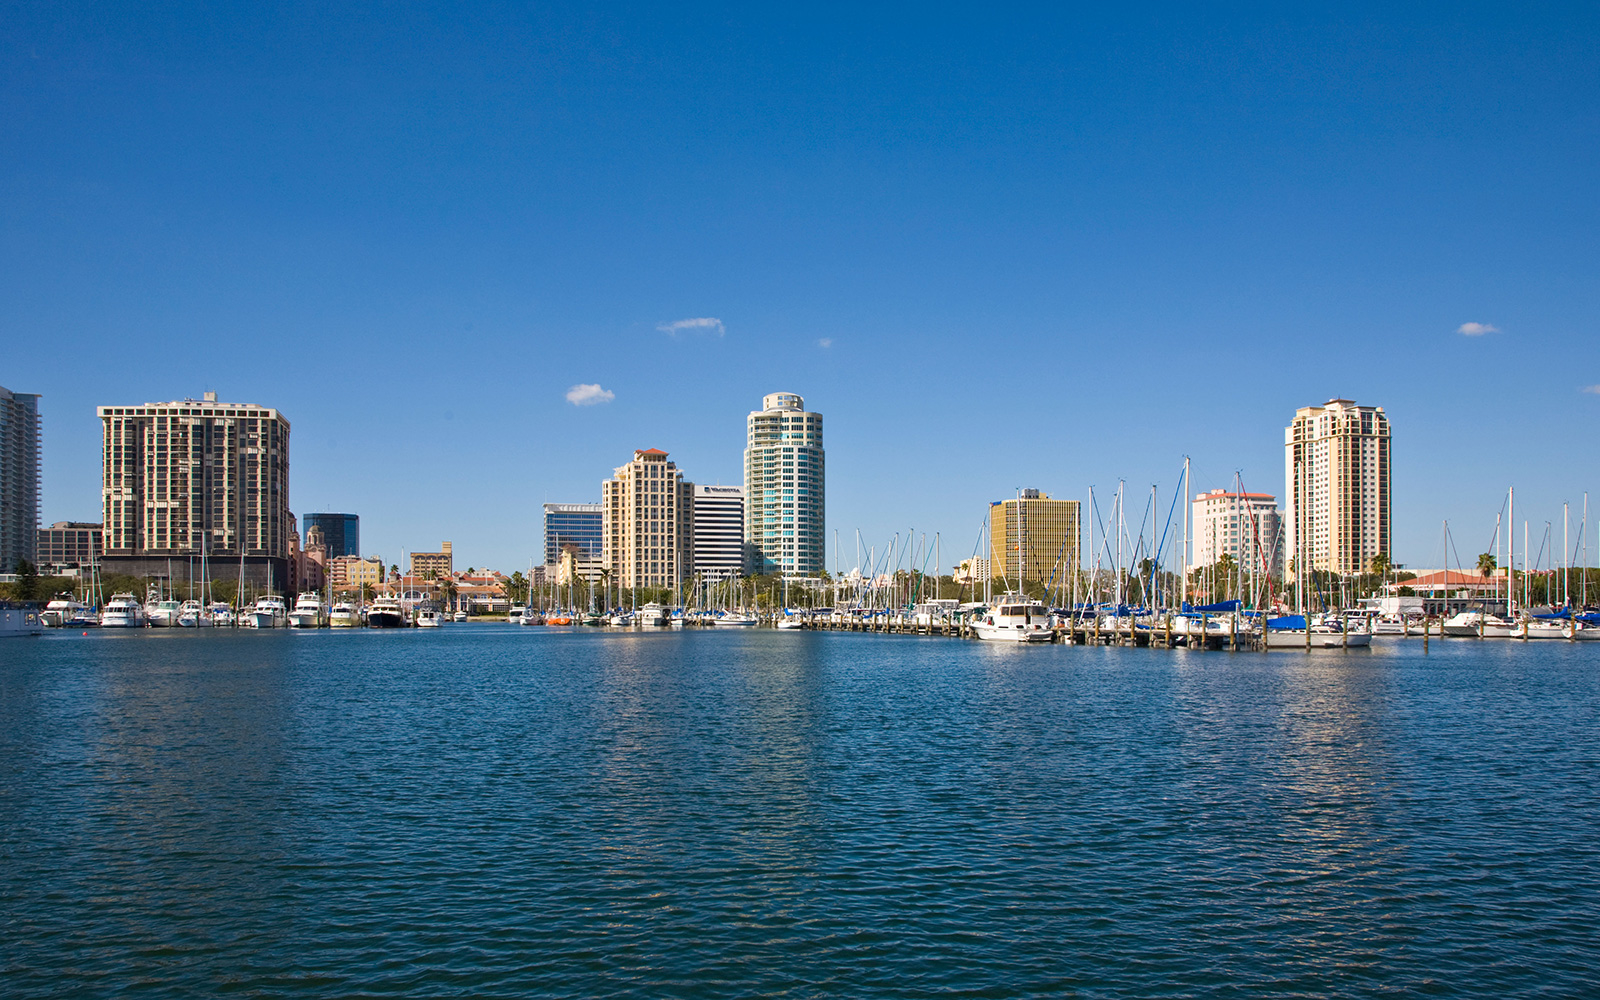 30. St. Petersburg, Florida, U.S.